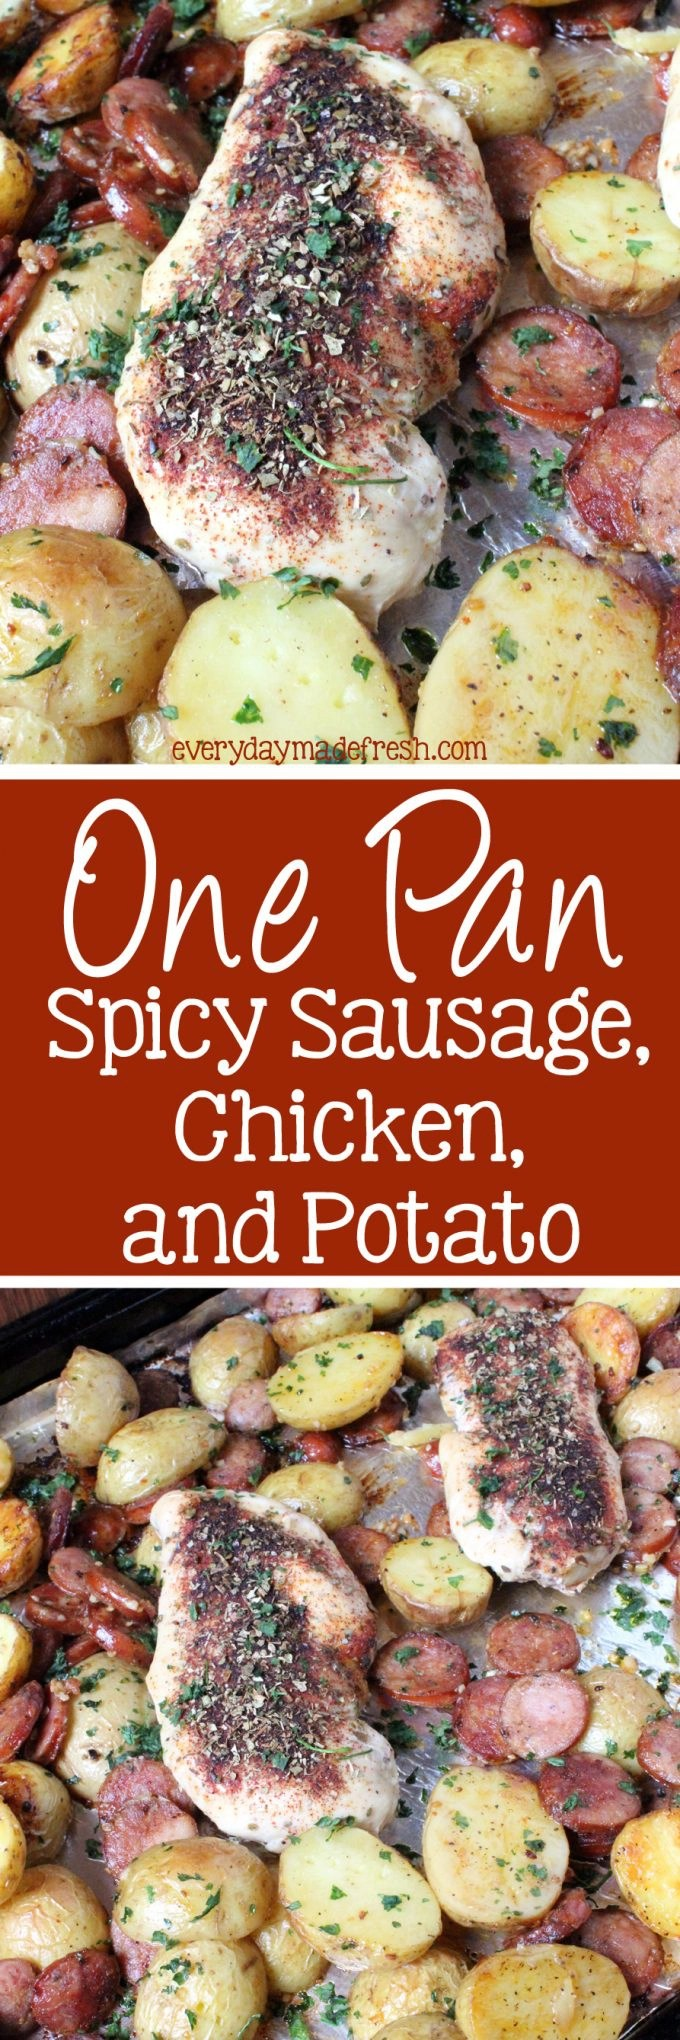 All the flavors in this amazingly simple dish will make the whole family happy! Oh, and did I mention that this One Pan Spicy Sausage, Chicken, and Potato has hardly any clean-up?! Yay, for one pan meals! | EverydayMadeFresh.com